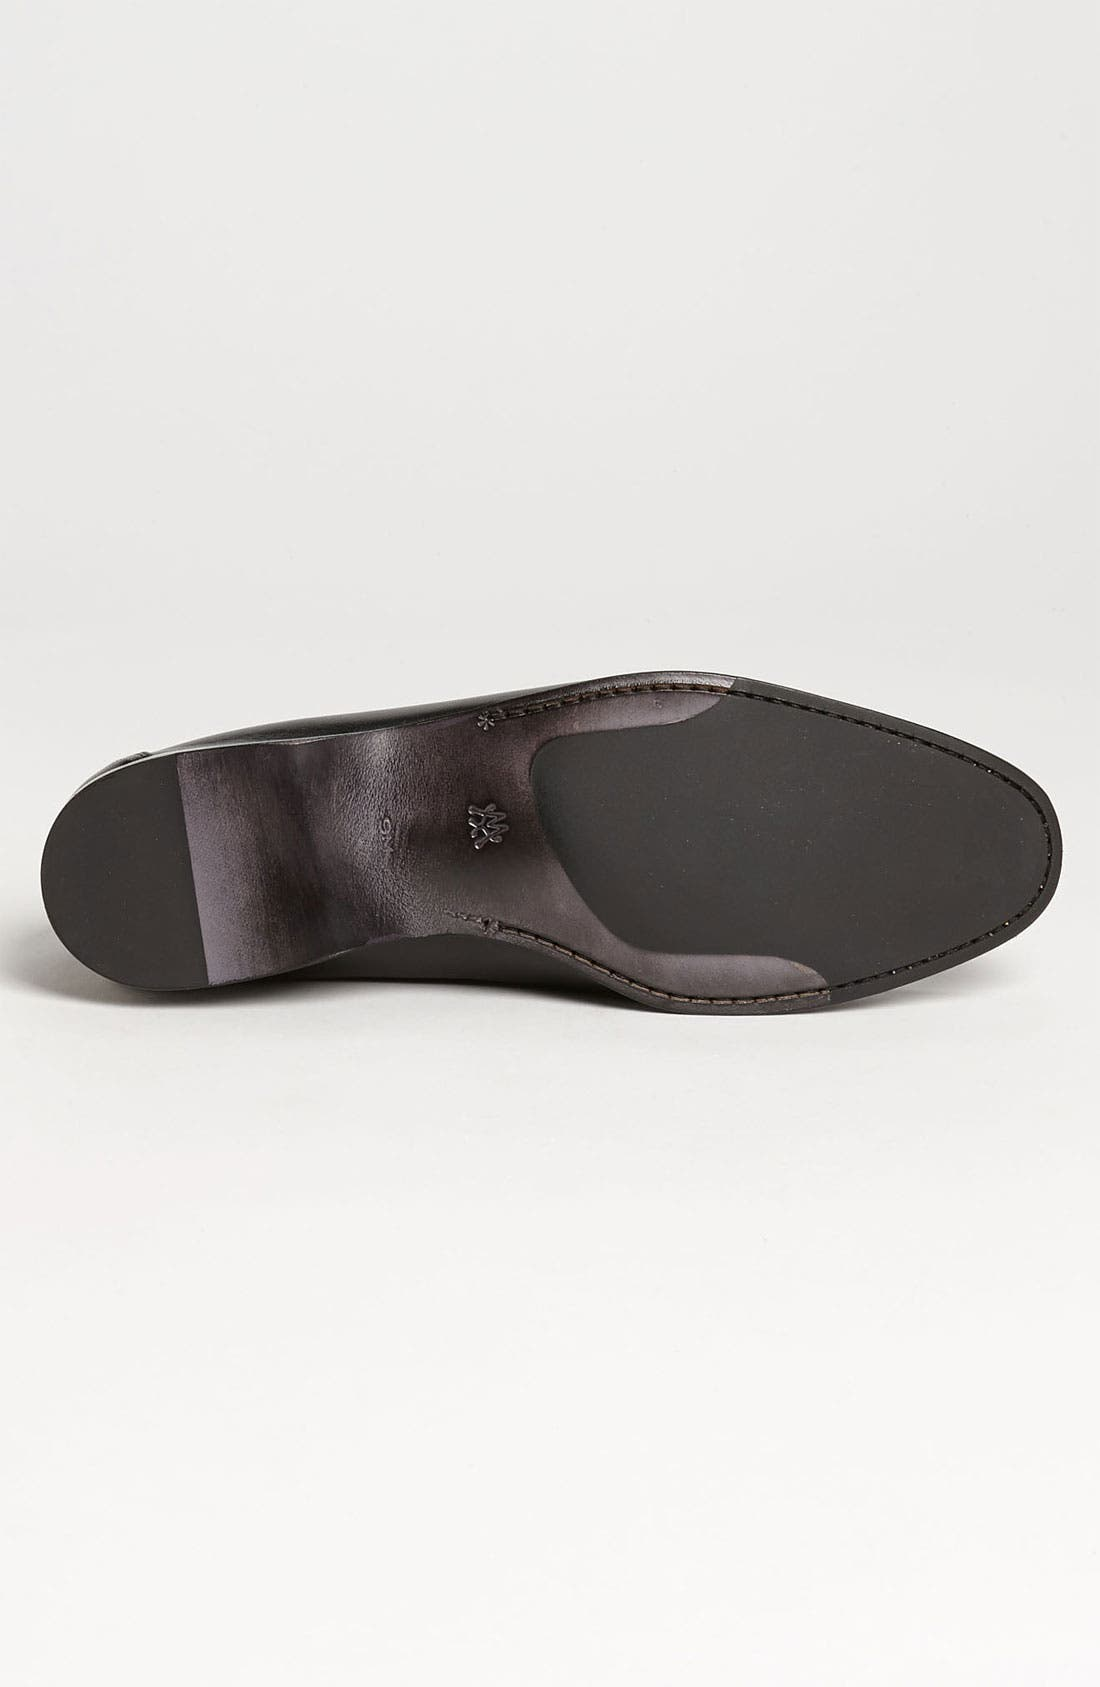 'Costanzo' Loafer,                             Alternate thumbnail 4, color,                             001